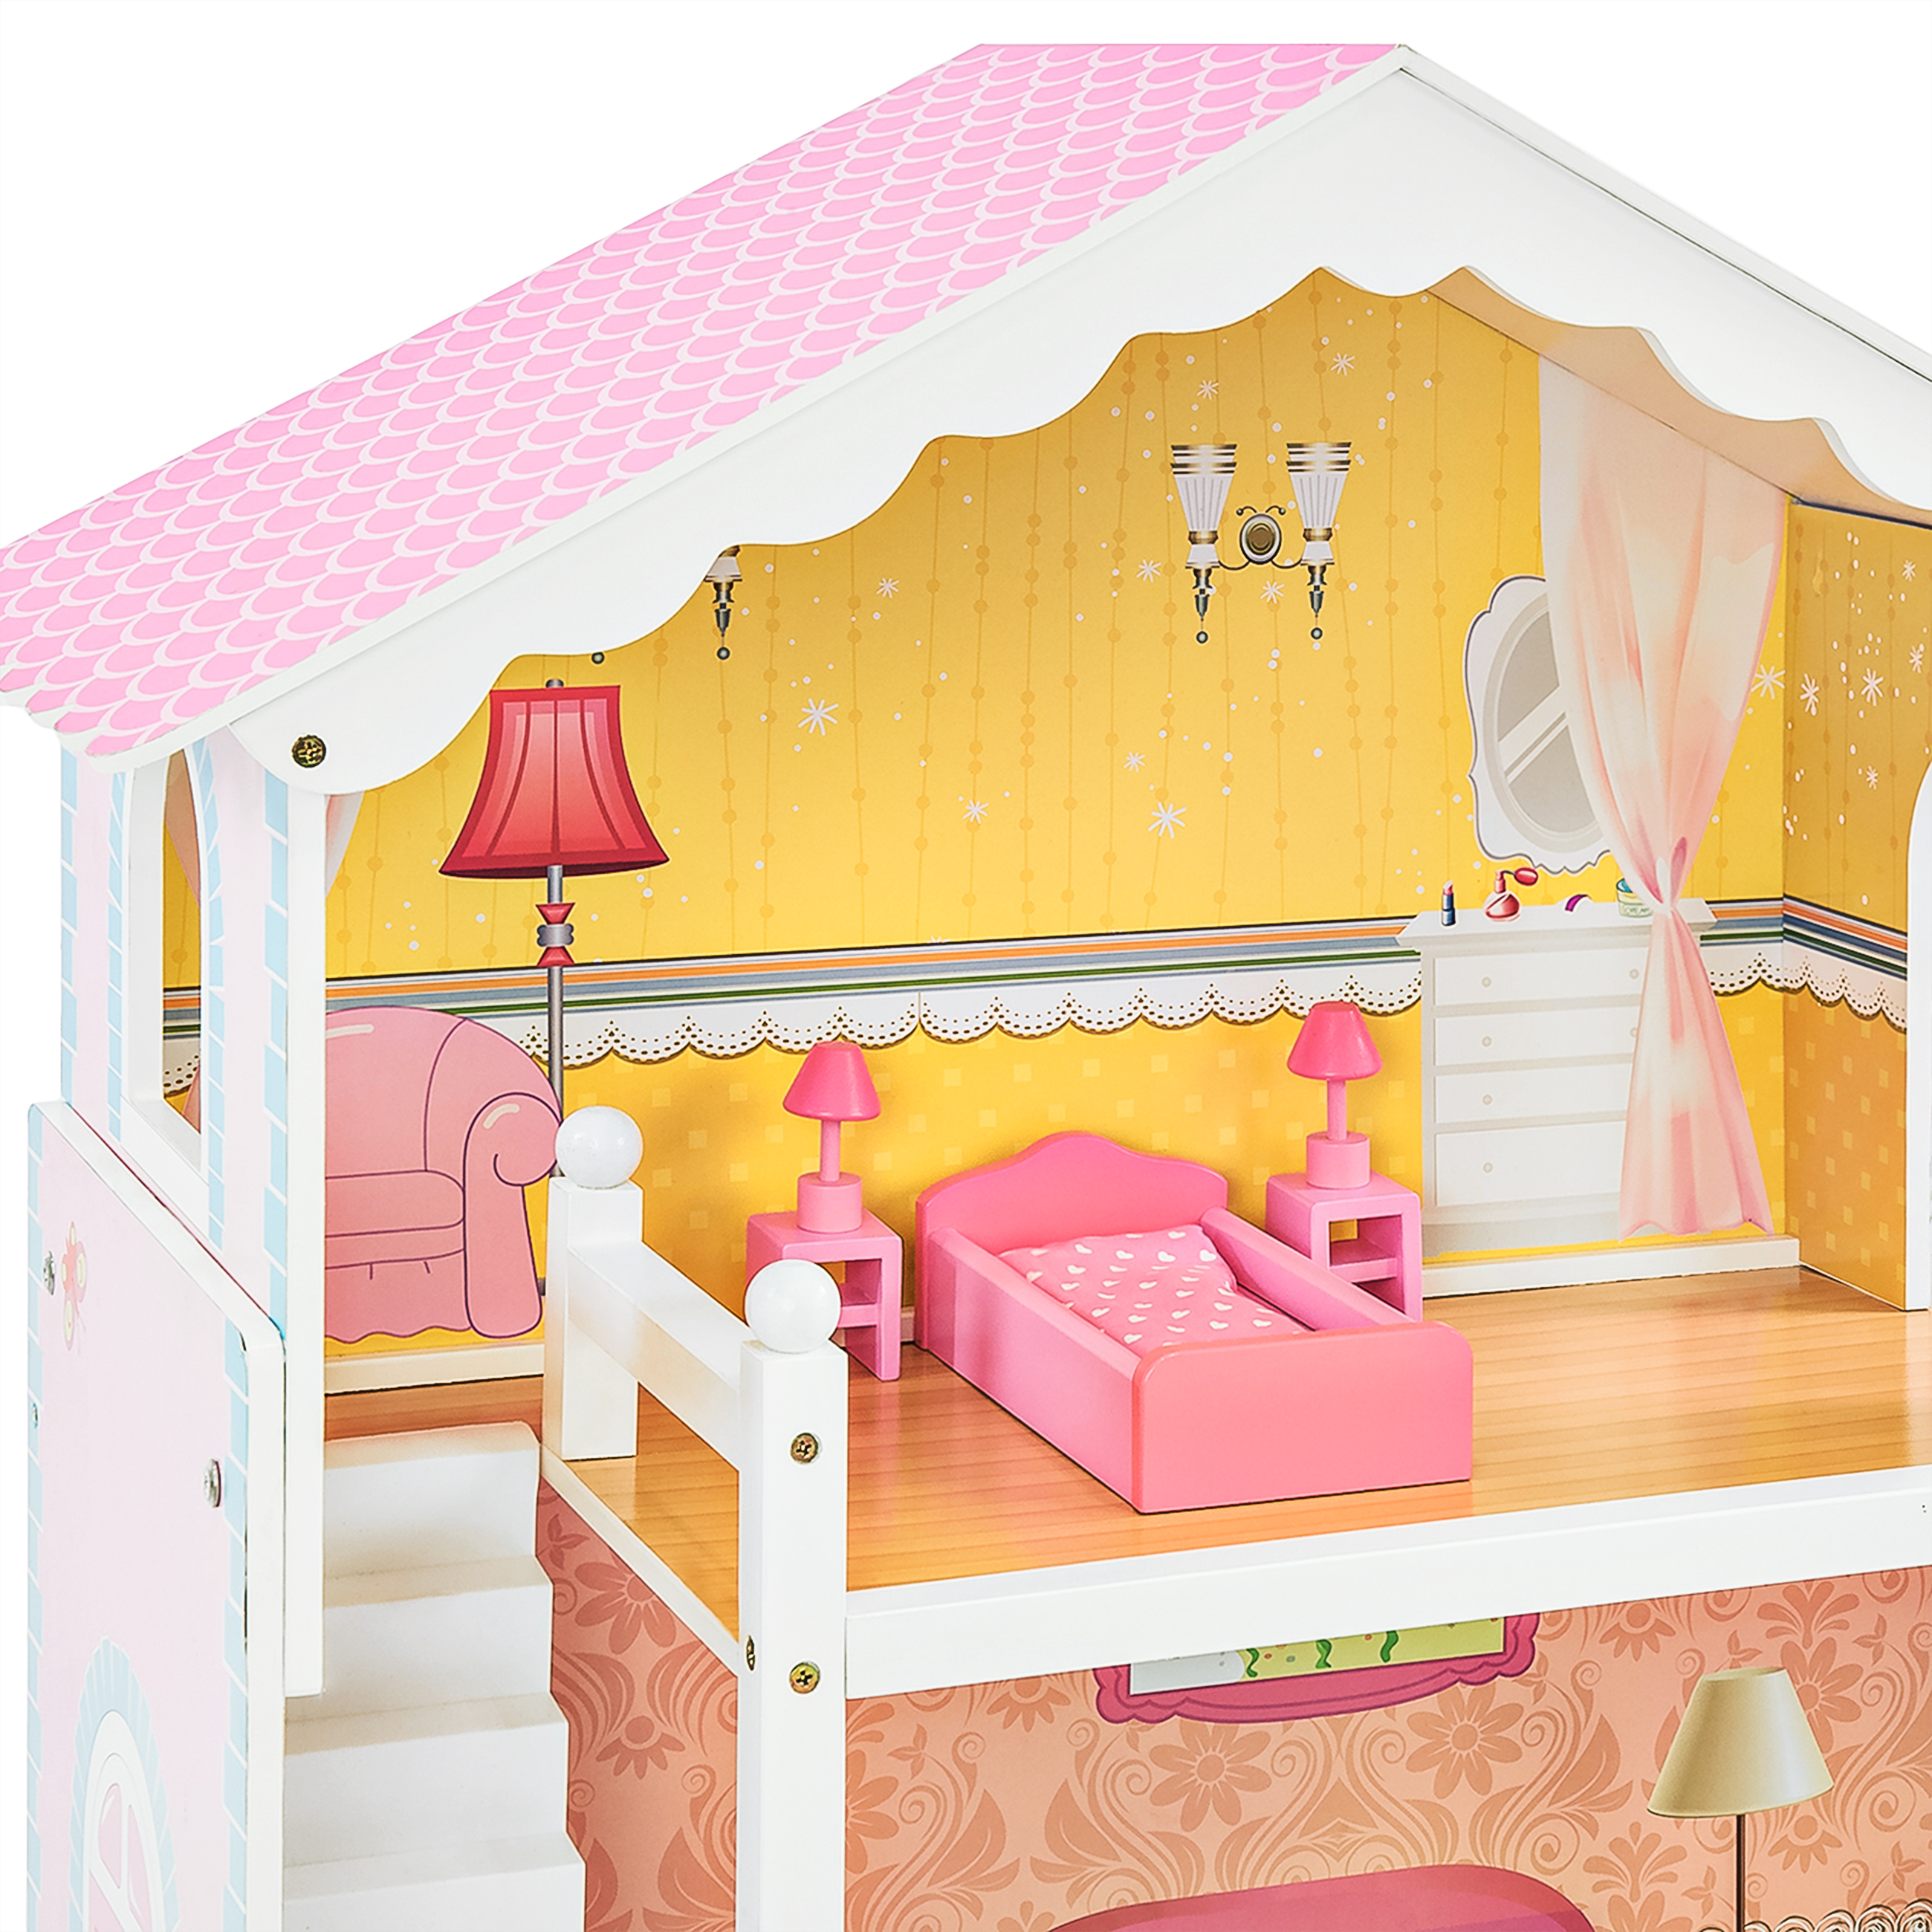 pink dolls house furniture. Best Choice Products Large Childrens Wooden Dollhouse Fits Barbie Doll House Pink W/ 17 Pieces Of Furniture - Walmart.com Dolls